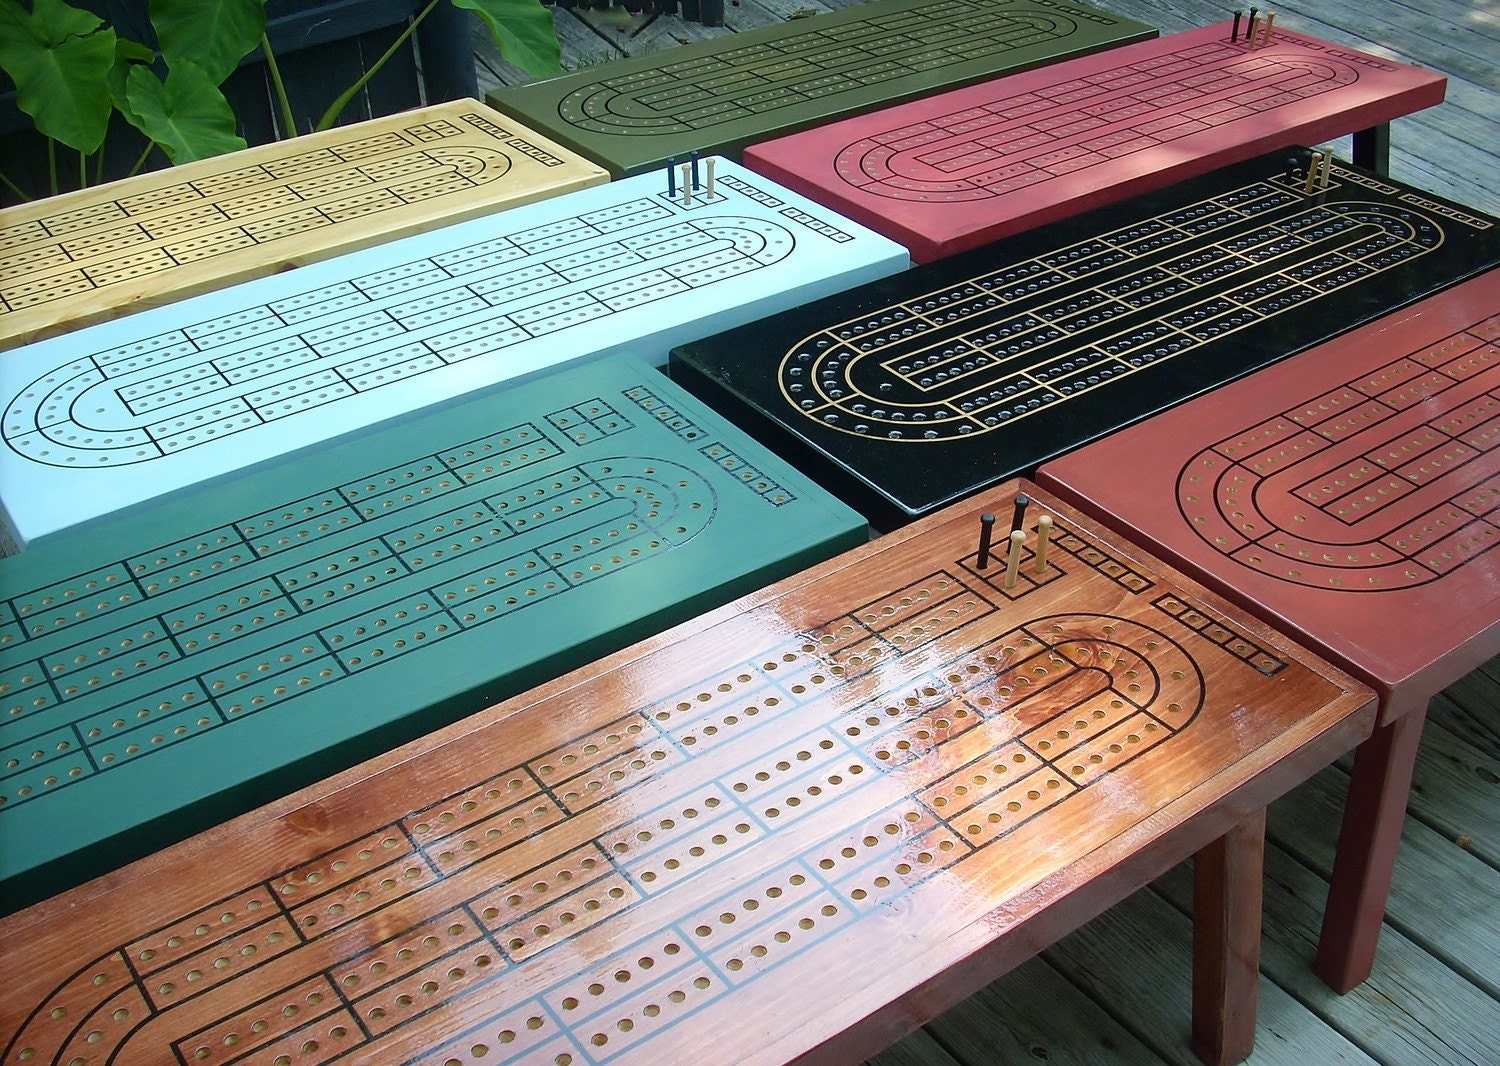 Crib boards for sale uk - Custom Color Cribbage Table Choose Your Color Or Stain Cribbage Board Cribbage Cribbage Board Coffee Table Game Table Cribbage Table